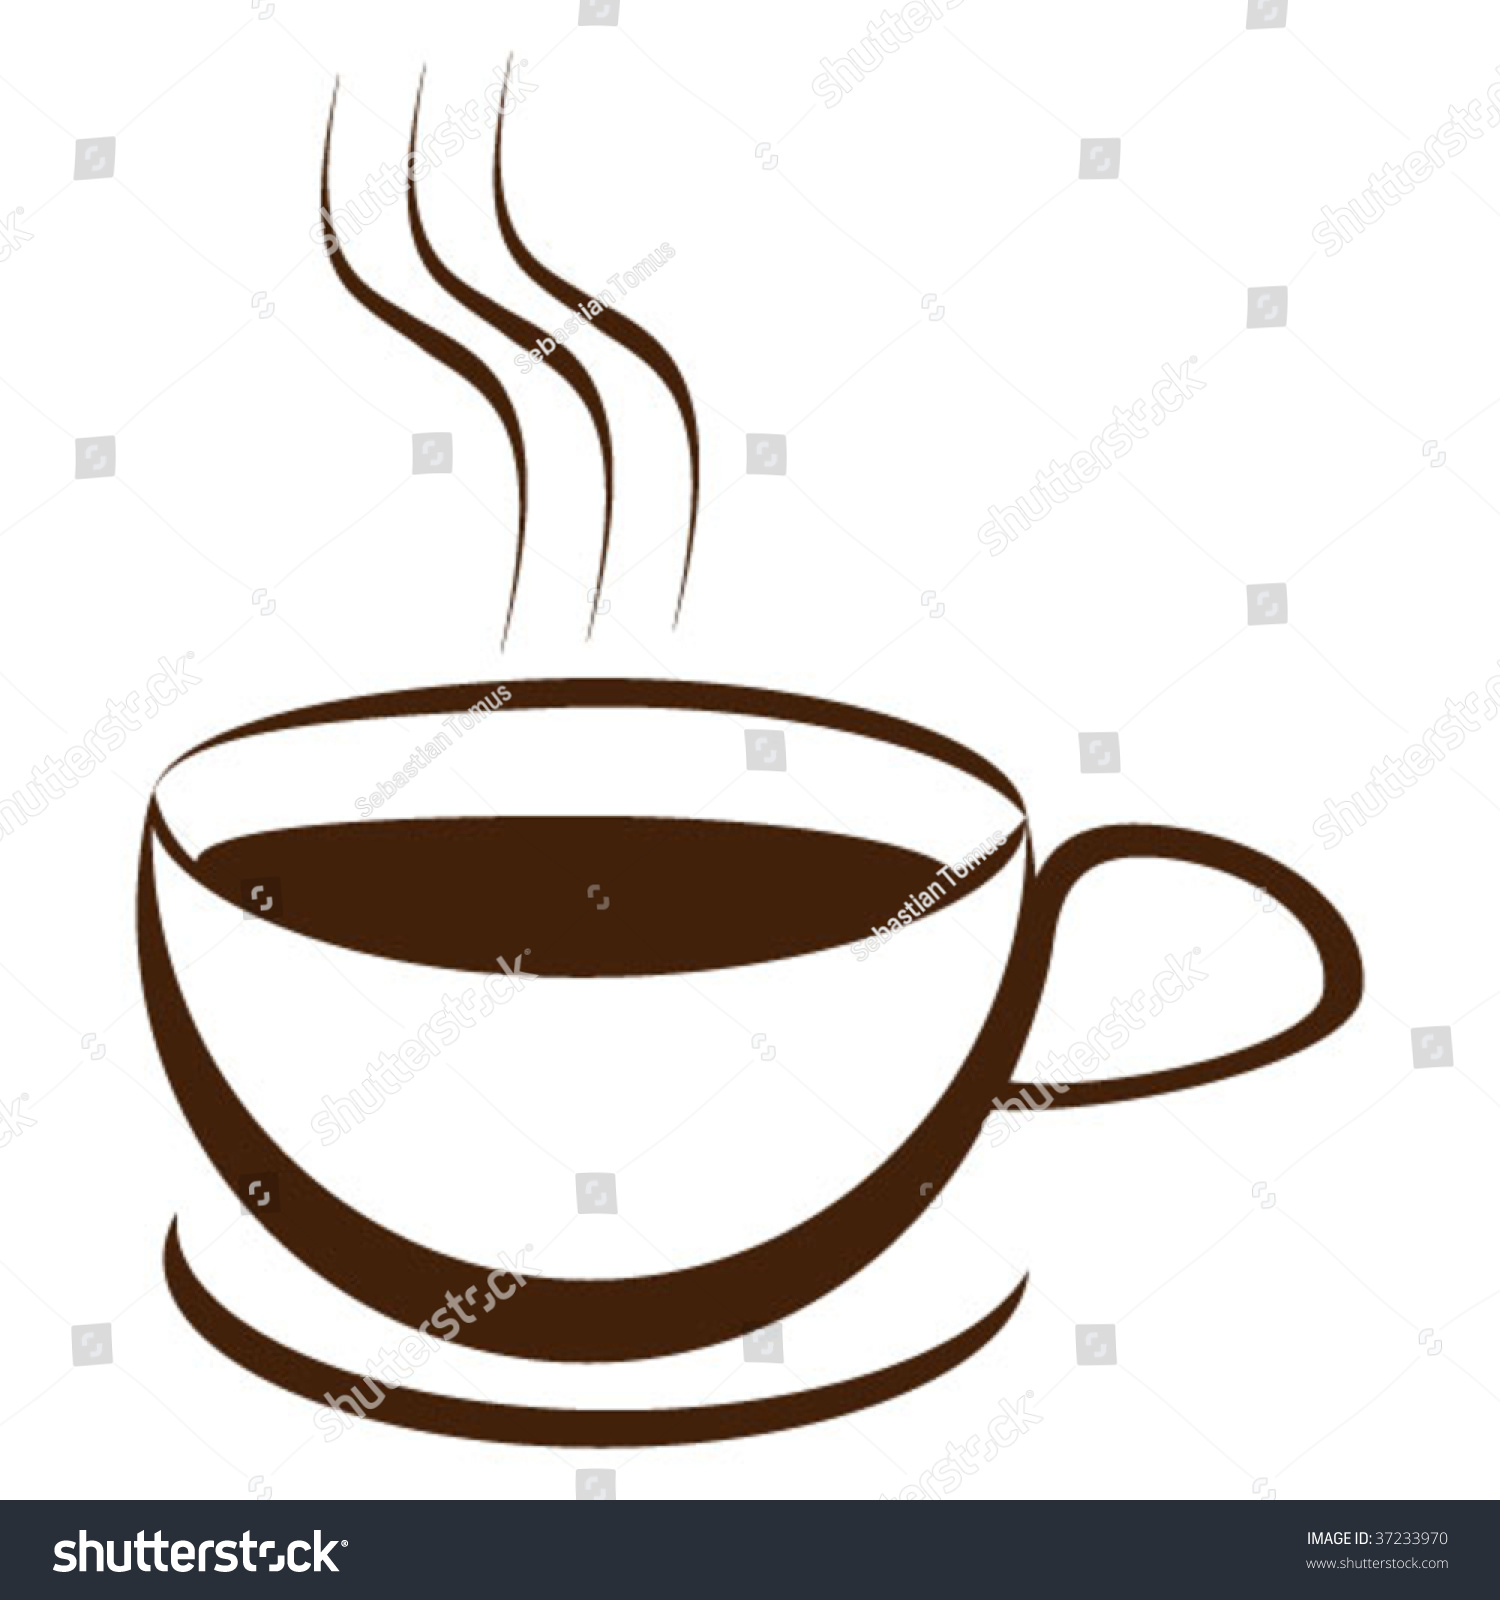 Coffee cup vector free - Coffee Cup Vector Illustration